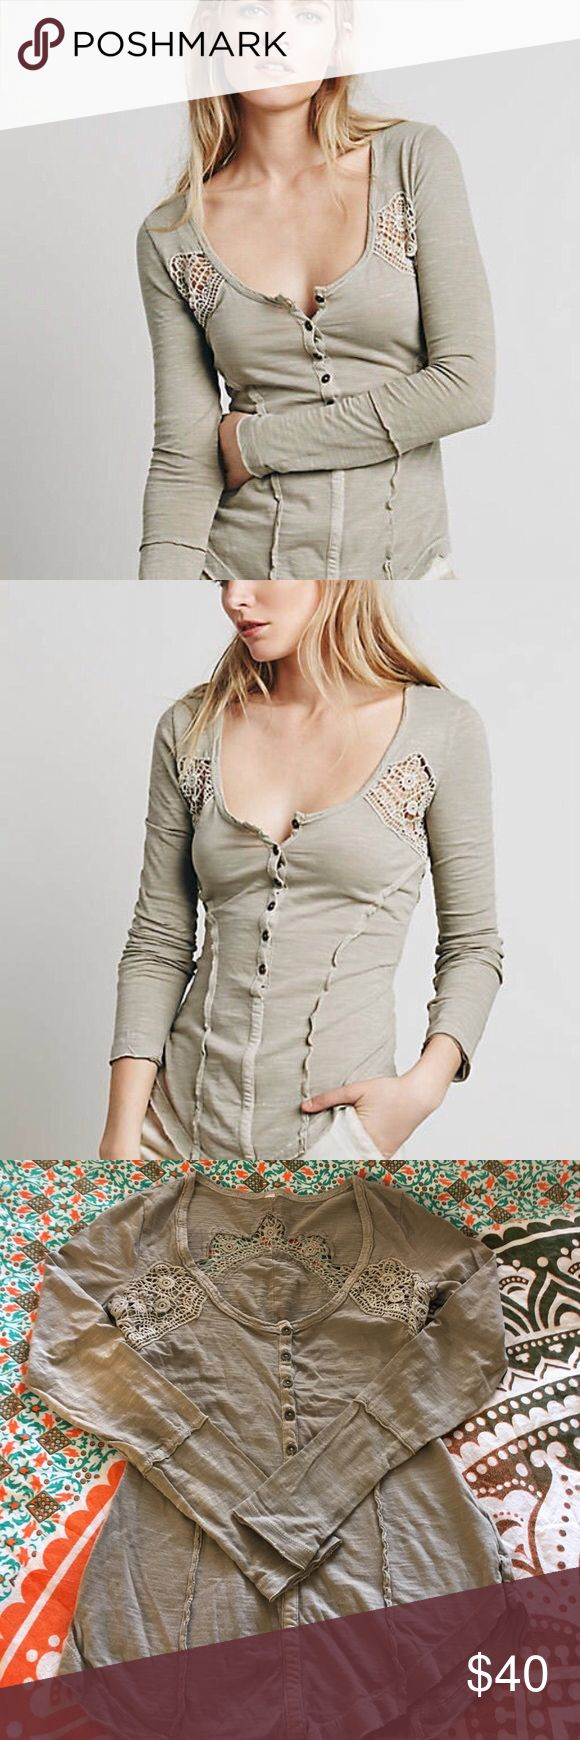 """Free People Keepsake slub knit long sleeve henley Very cute and flattering top! Slub knit with crochet inset panels, looks great worn alone or over a contrasting tank top. Worn and washed once, EUC, no flaws. Color is """"stone"""", a tan/taupe neutral that goes with everything! Free People Tops Tees - Long Sleeve"""